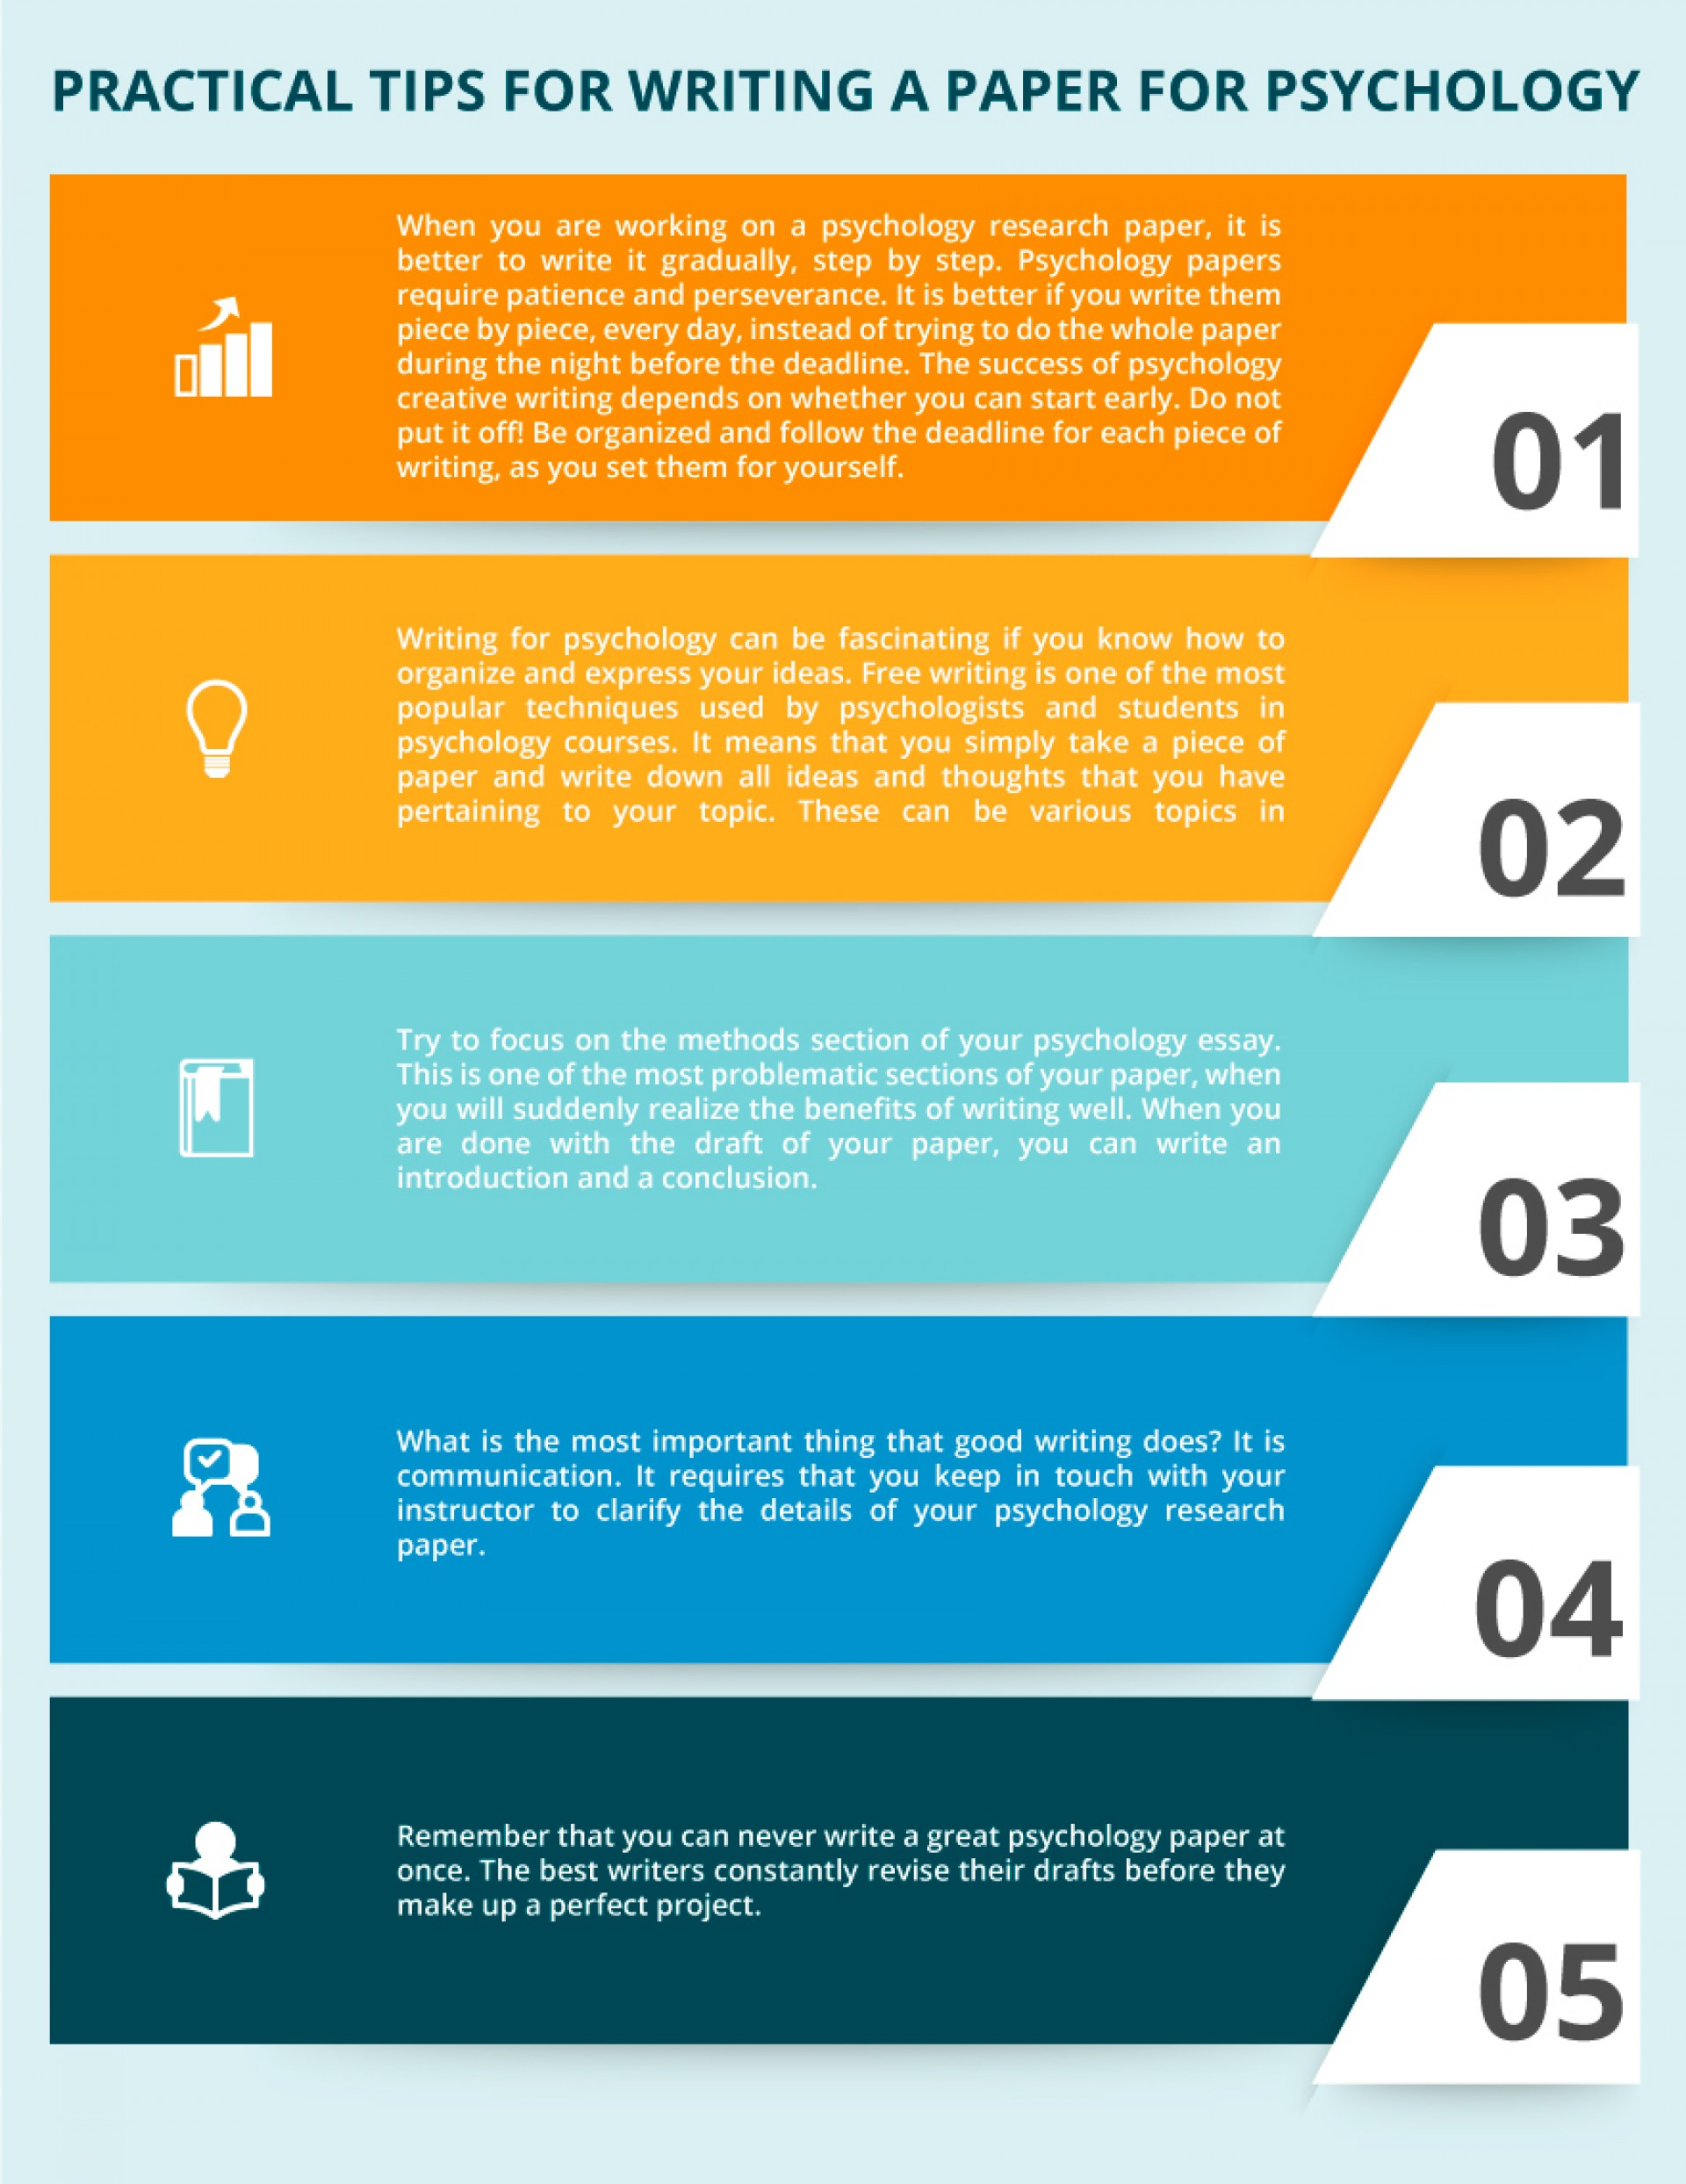 027 Good Topics For Research Papers In Psychology Infographic Practical Tips Writing Paper  Excellent List Of Interesting1920